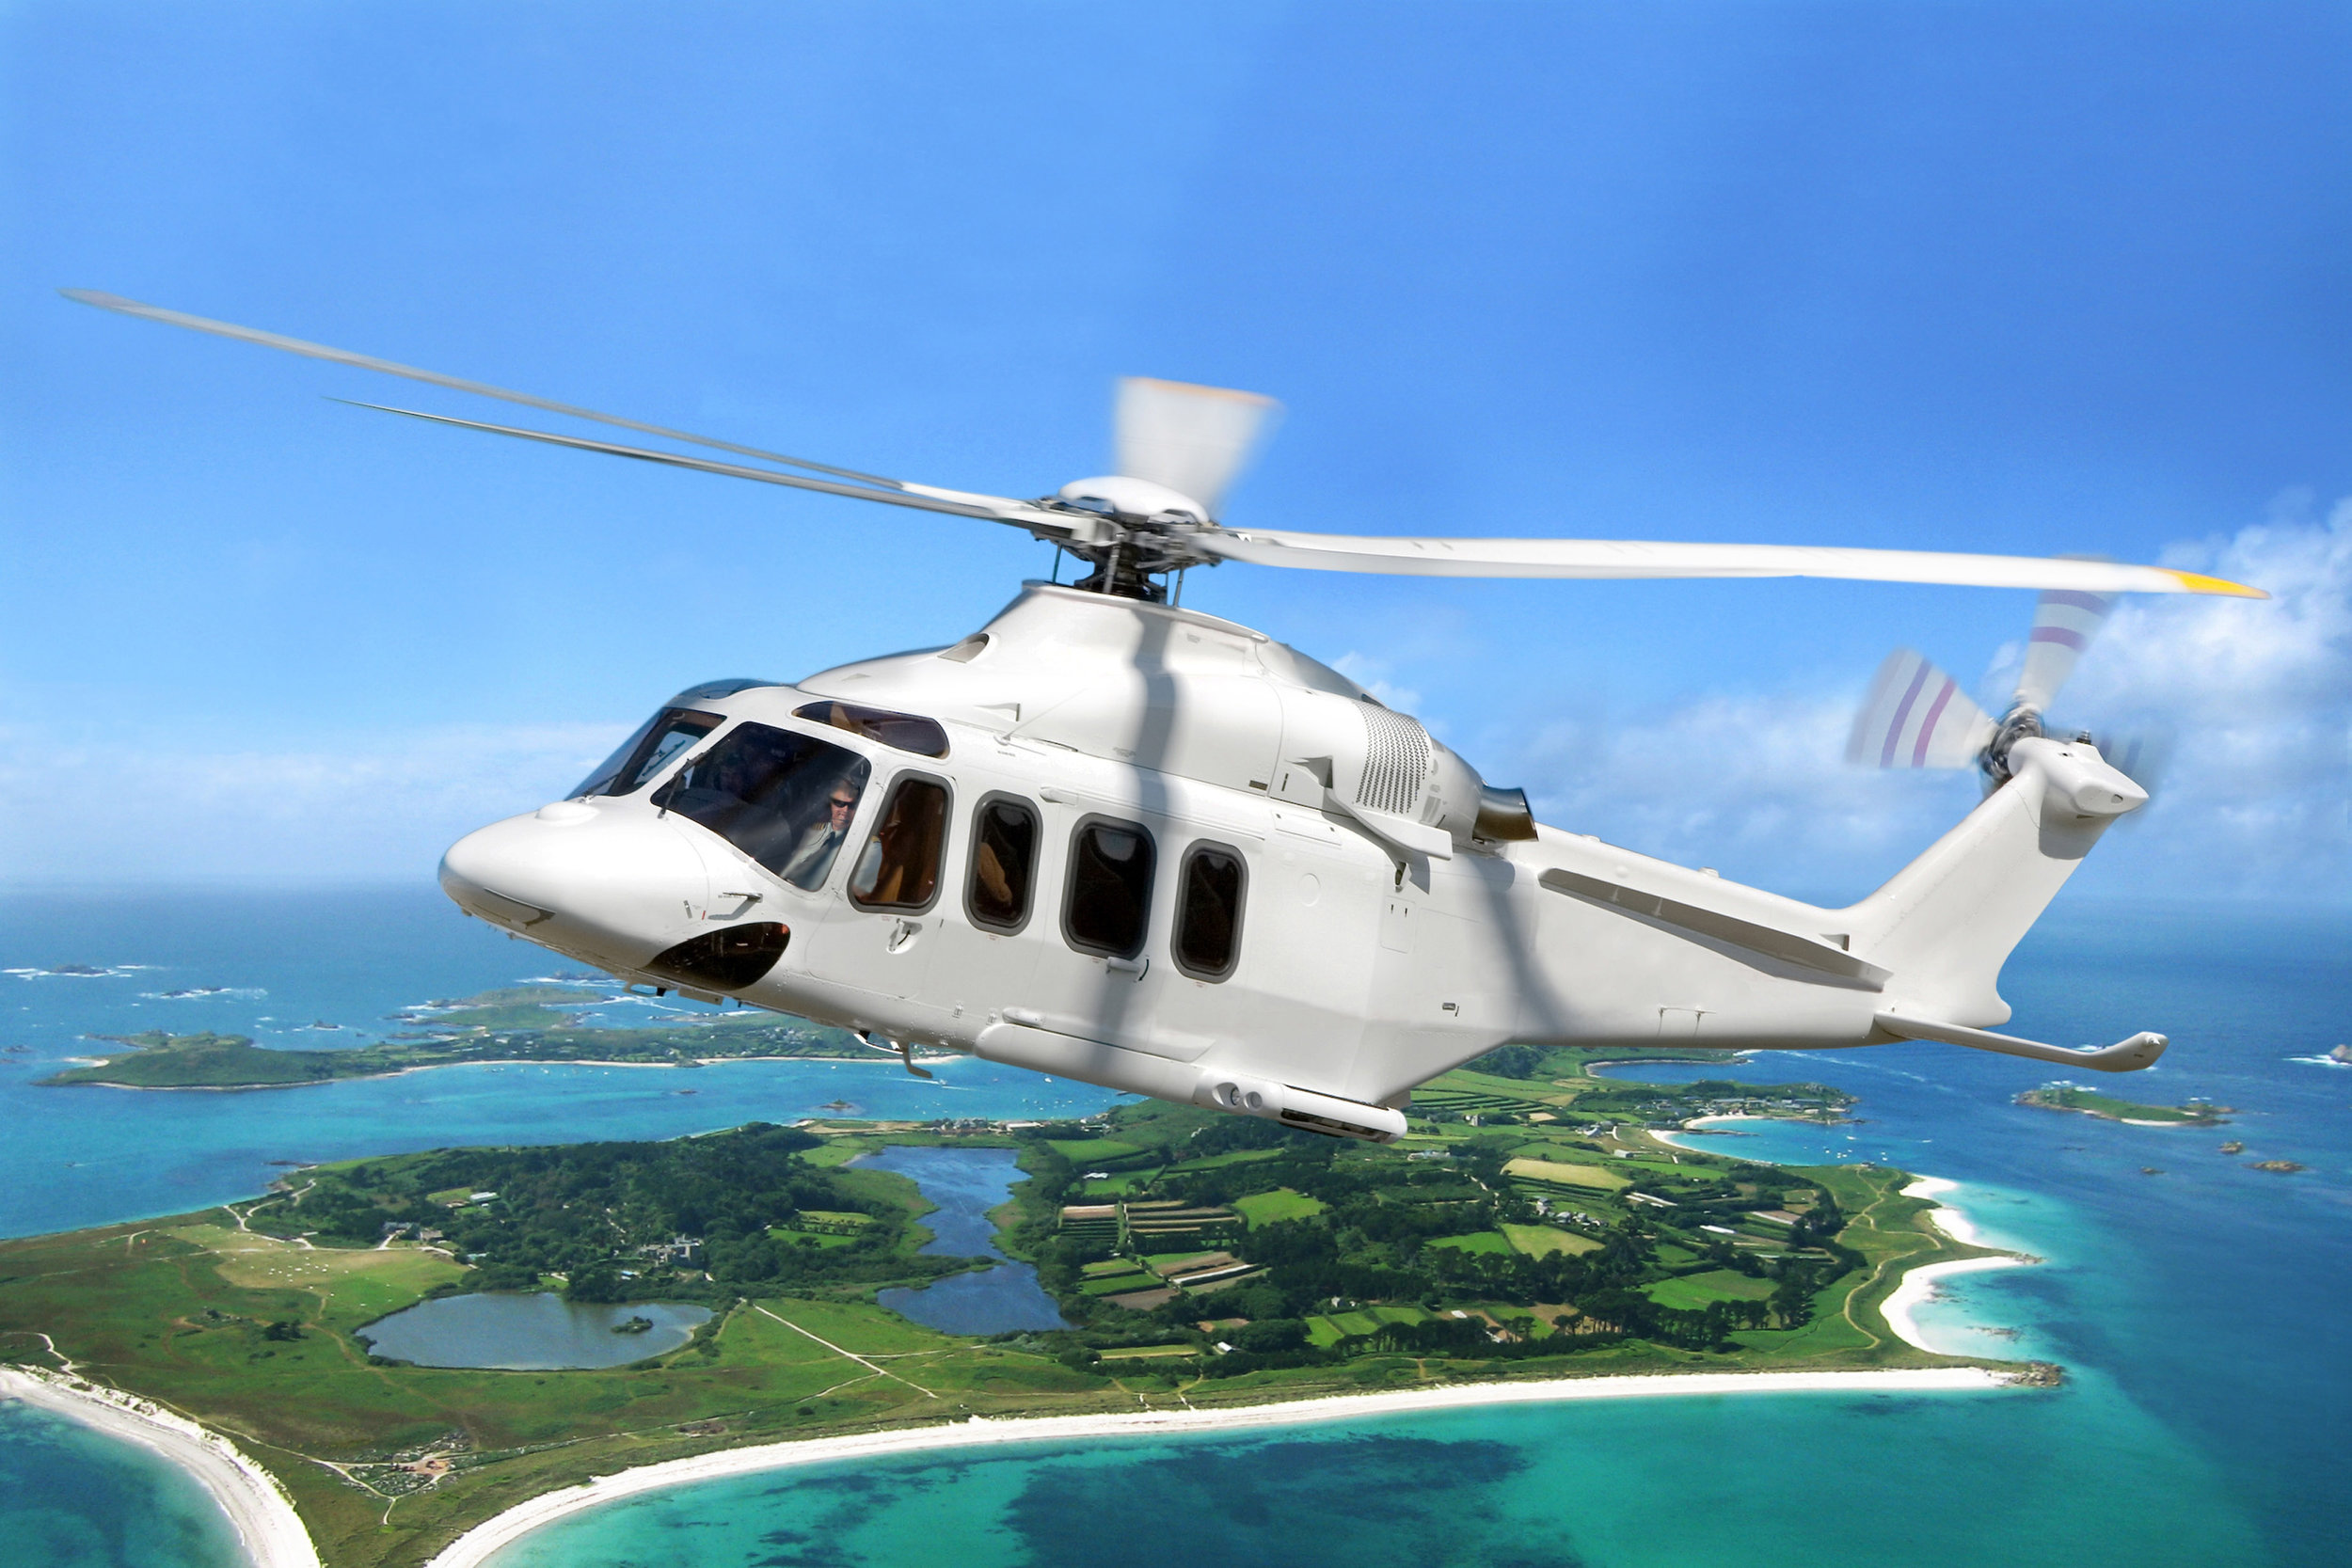 AgustaWestland (AW) 139 helicopters will operate from the new heliport at Penzance to the St Mary's and Tresco.